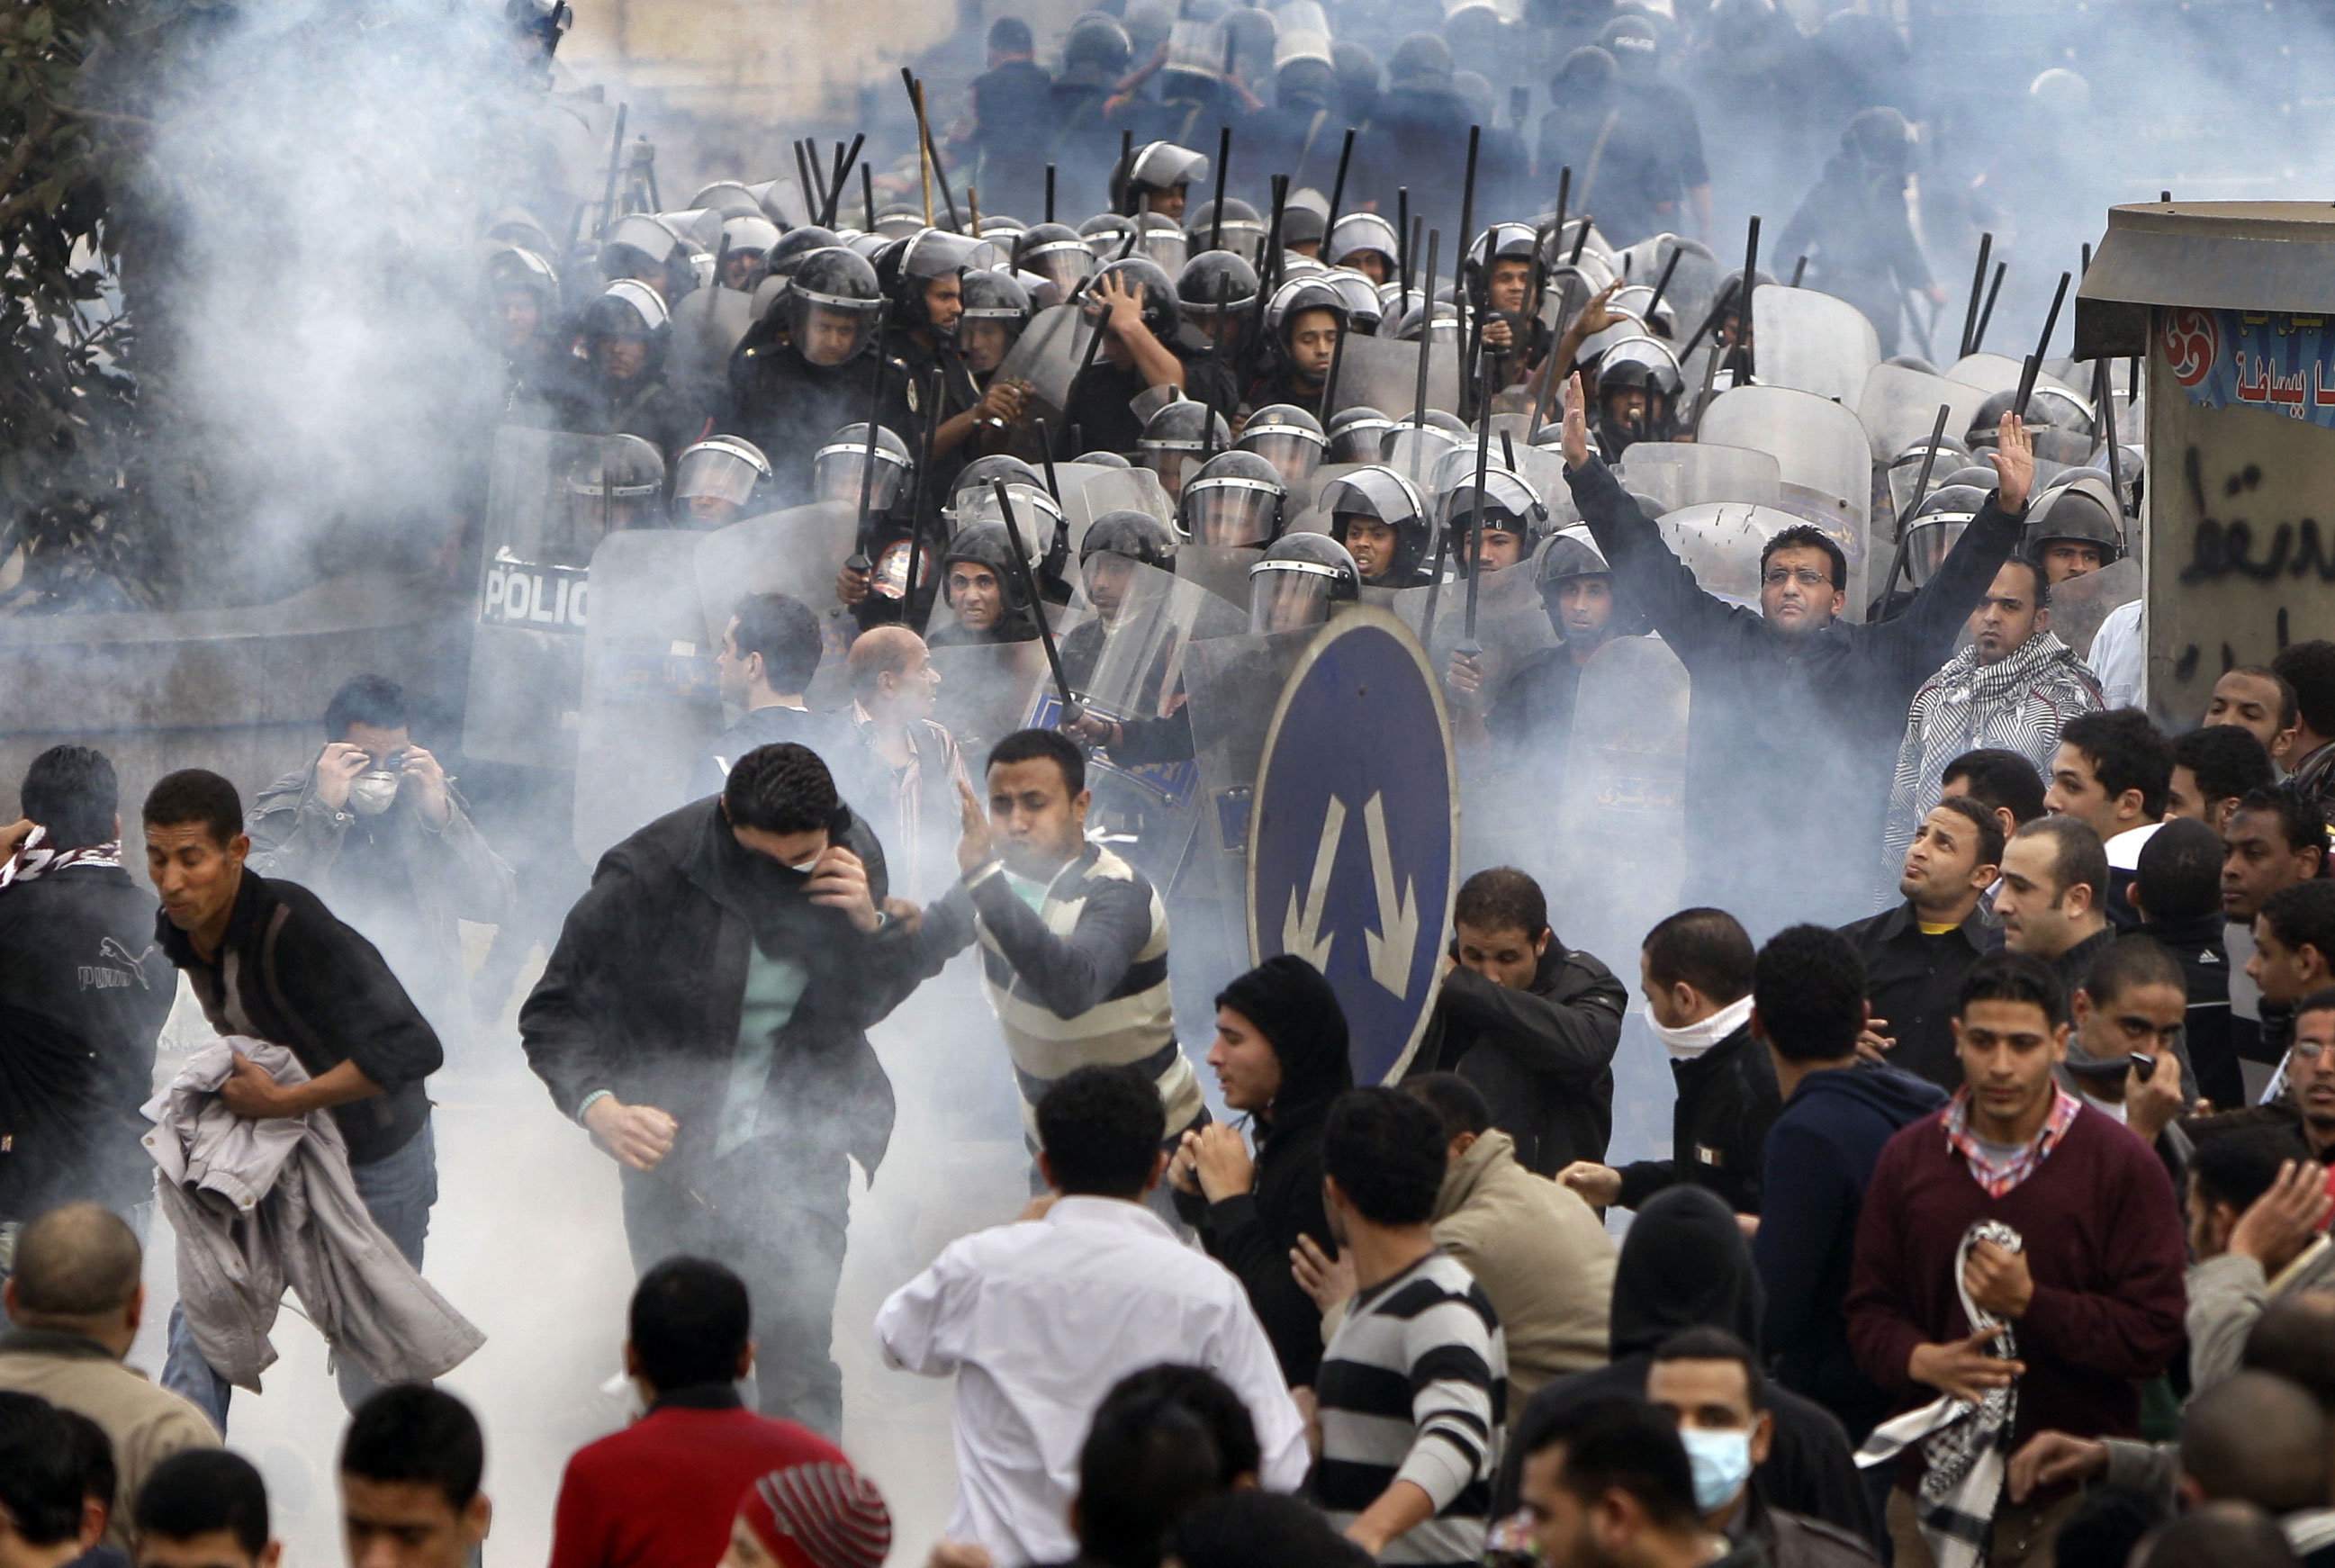 revolution of egypt Protests against political repression and unemployment triggered egypt's social uprising, which toppled president hosni mubarak after 30 years in office.